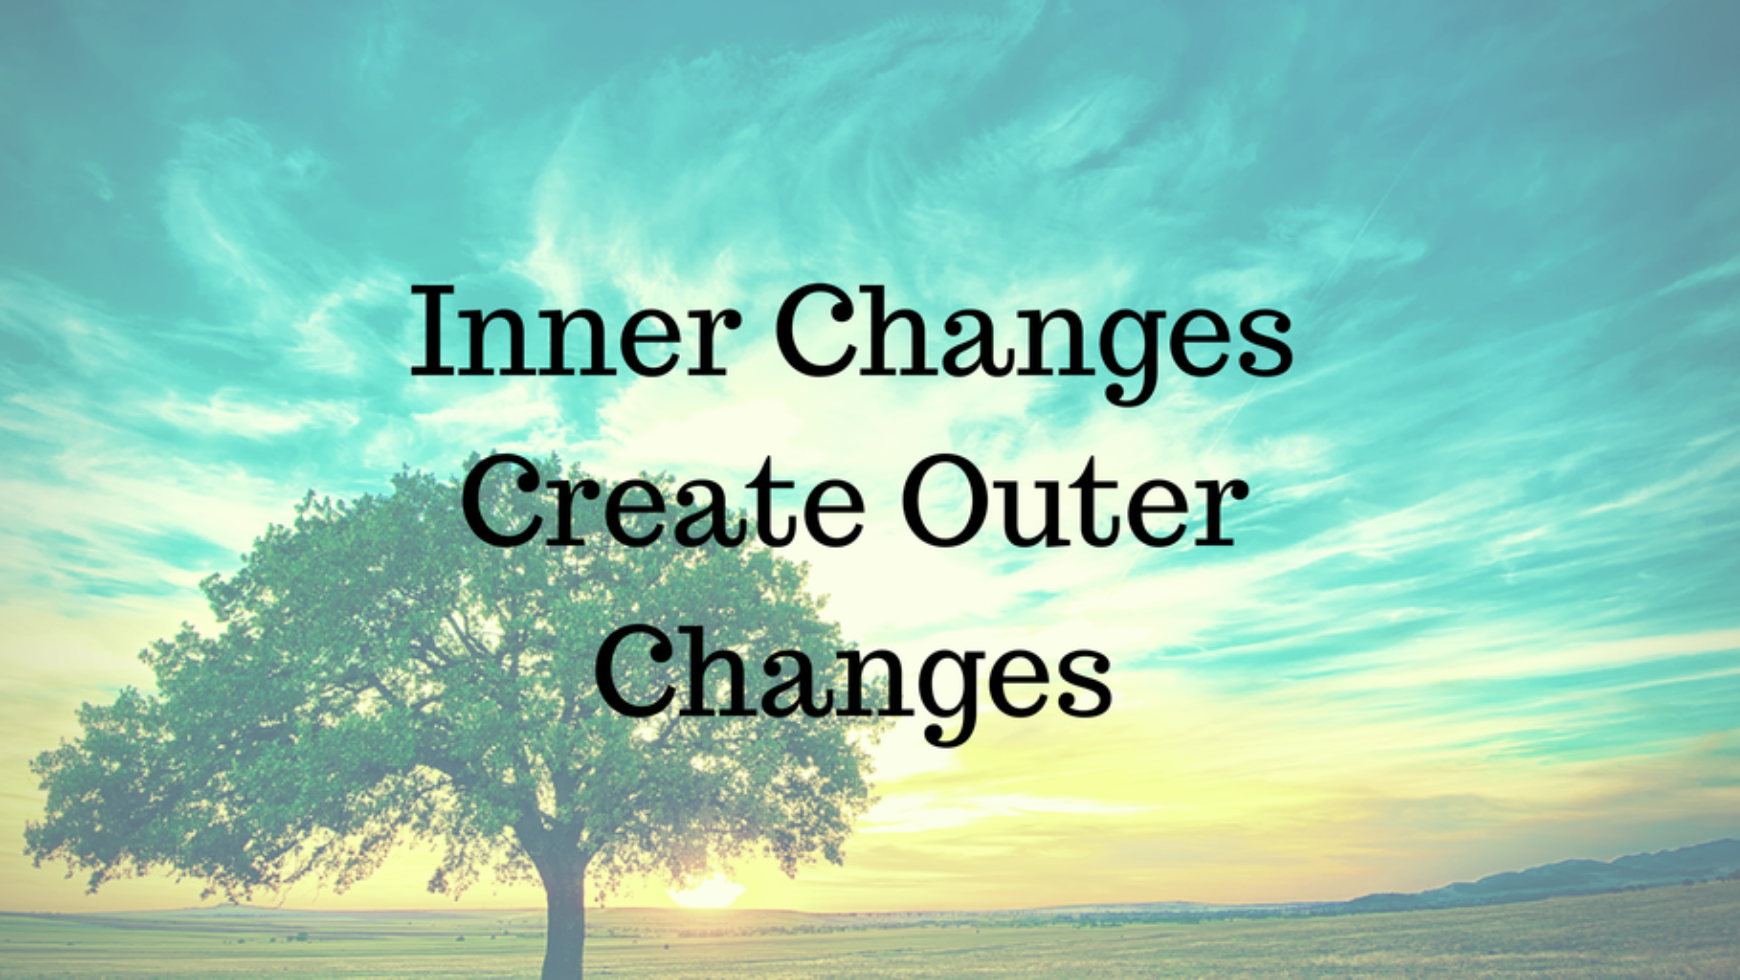 Inner changes create outer changes